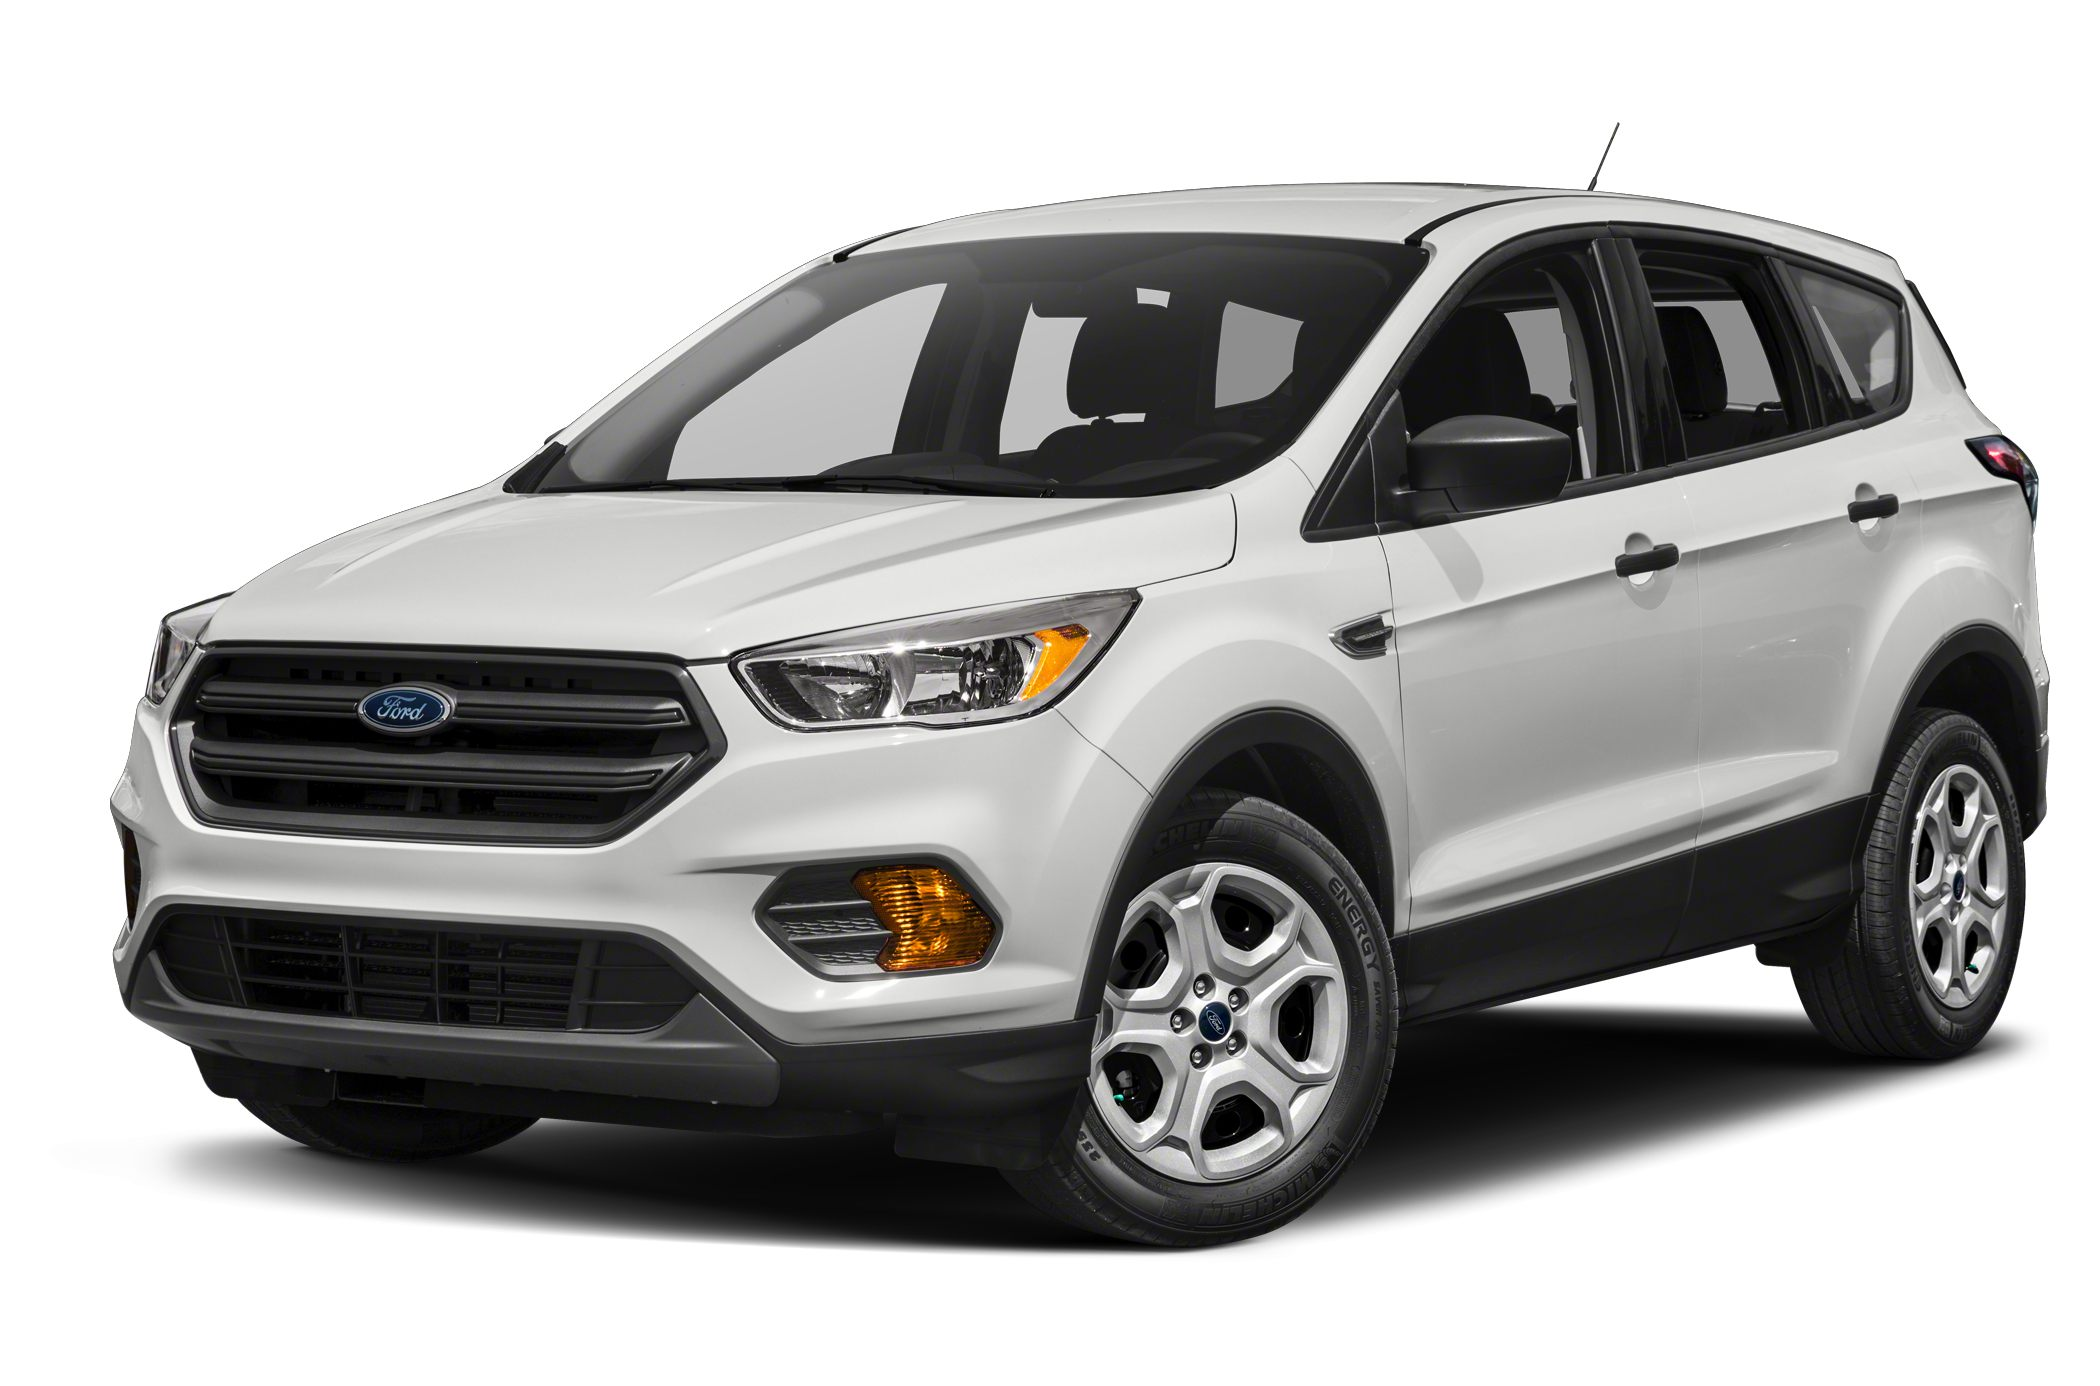 Delehanty Ford | New Ford dealership in Flushing, MI 48433